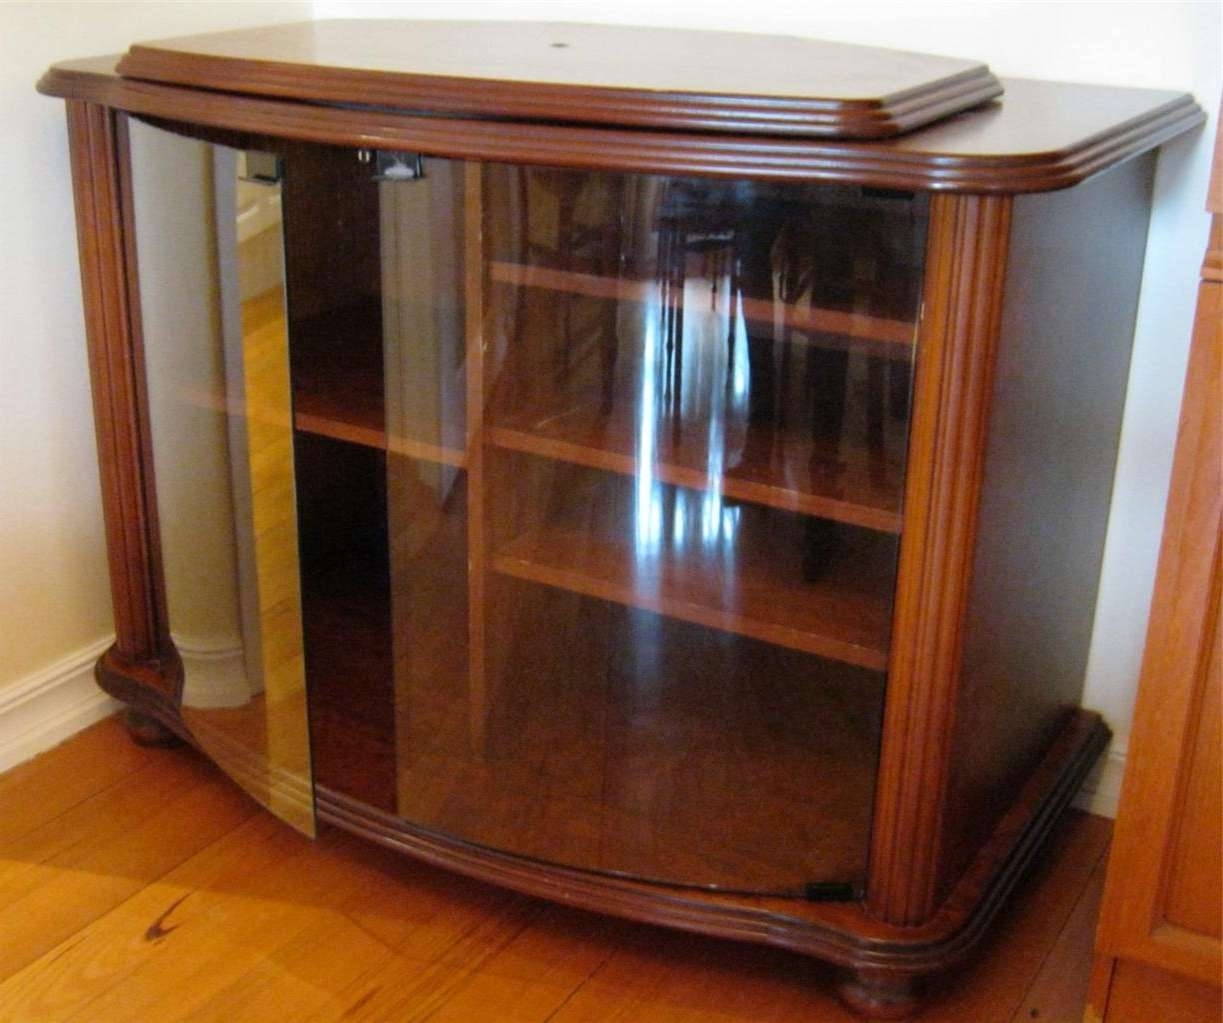 Corner Tv Stand Cabinet With Frameless Glass Doors – Decofurnish With Glass Tv Cabinets With Doors (View 19 of 20)